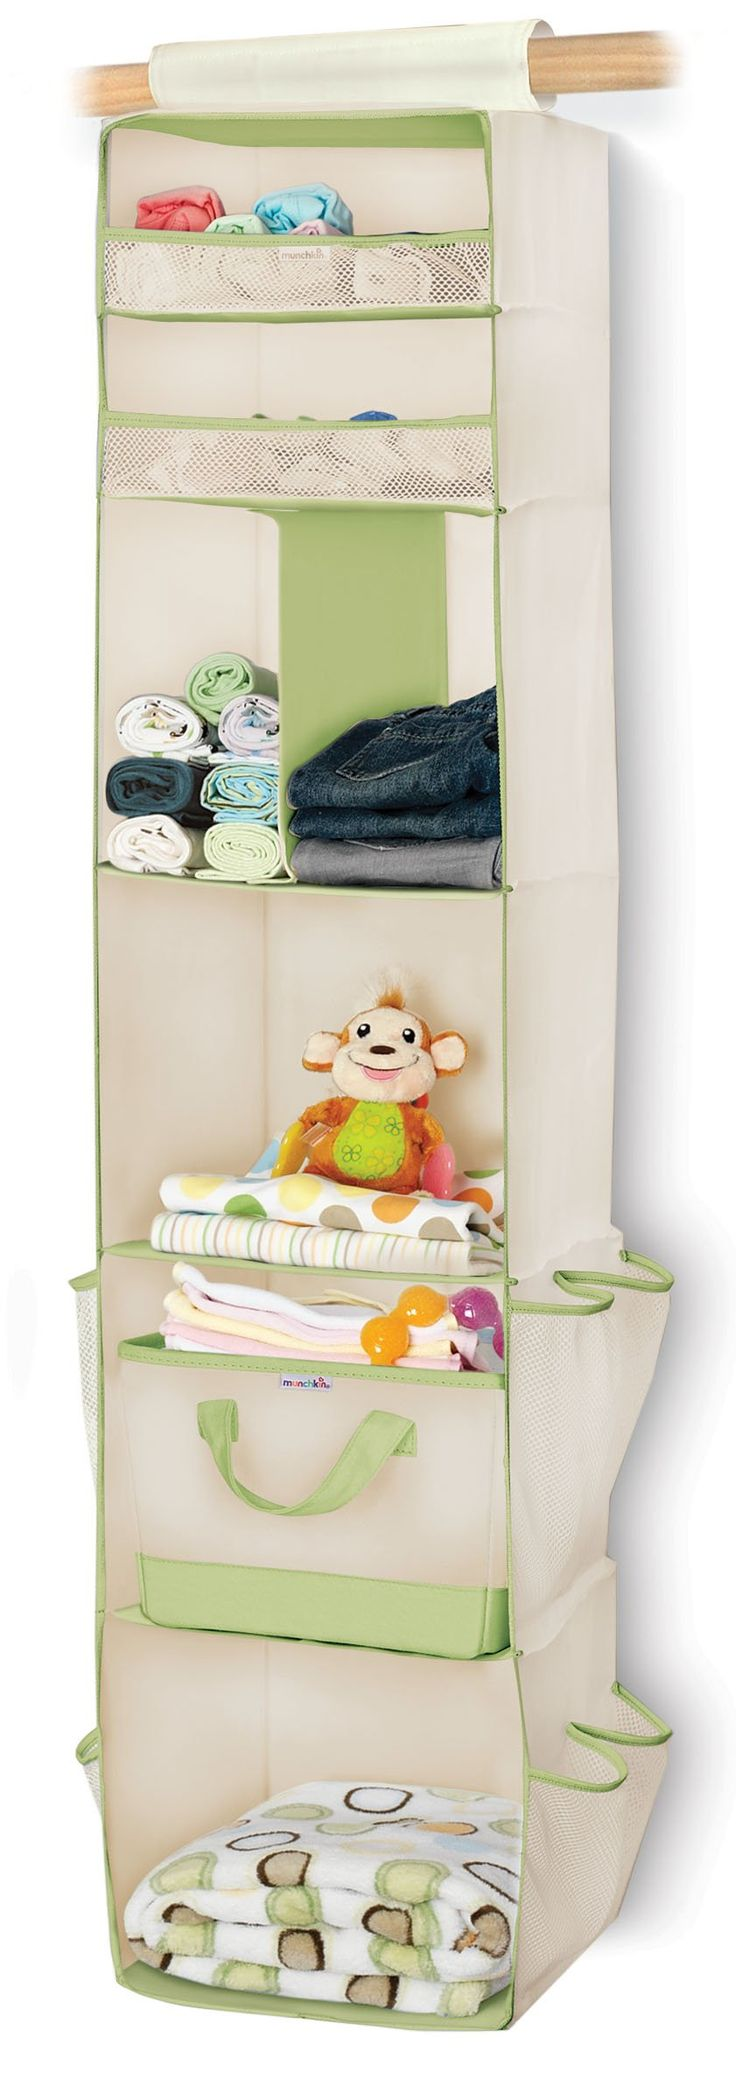 Munchkin 6 Shelf Closet Organizer: If your kids share a room with you or a sibling this is a great way to use your space well!